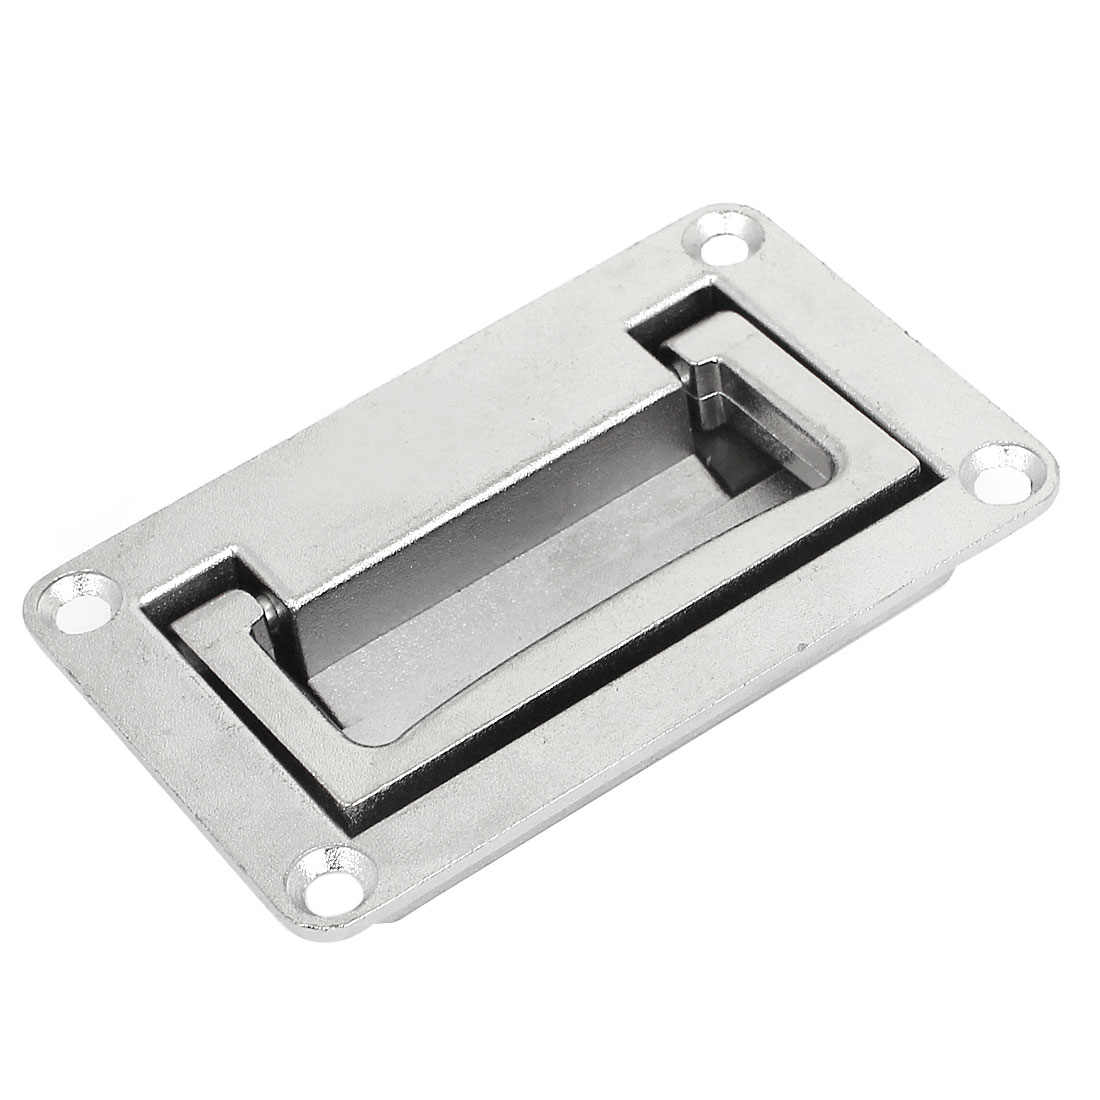 Cupboard Cabinet Rectangle Shaped Recessed Folding Pull Handle Grip 95 x 60mm